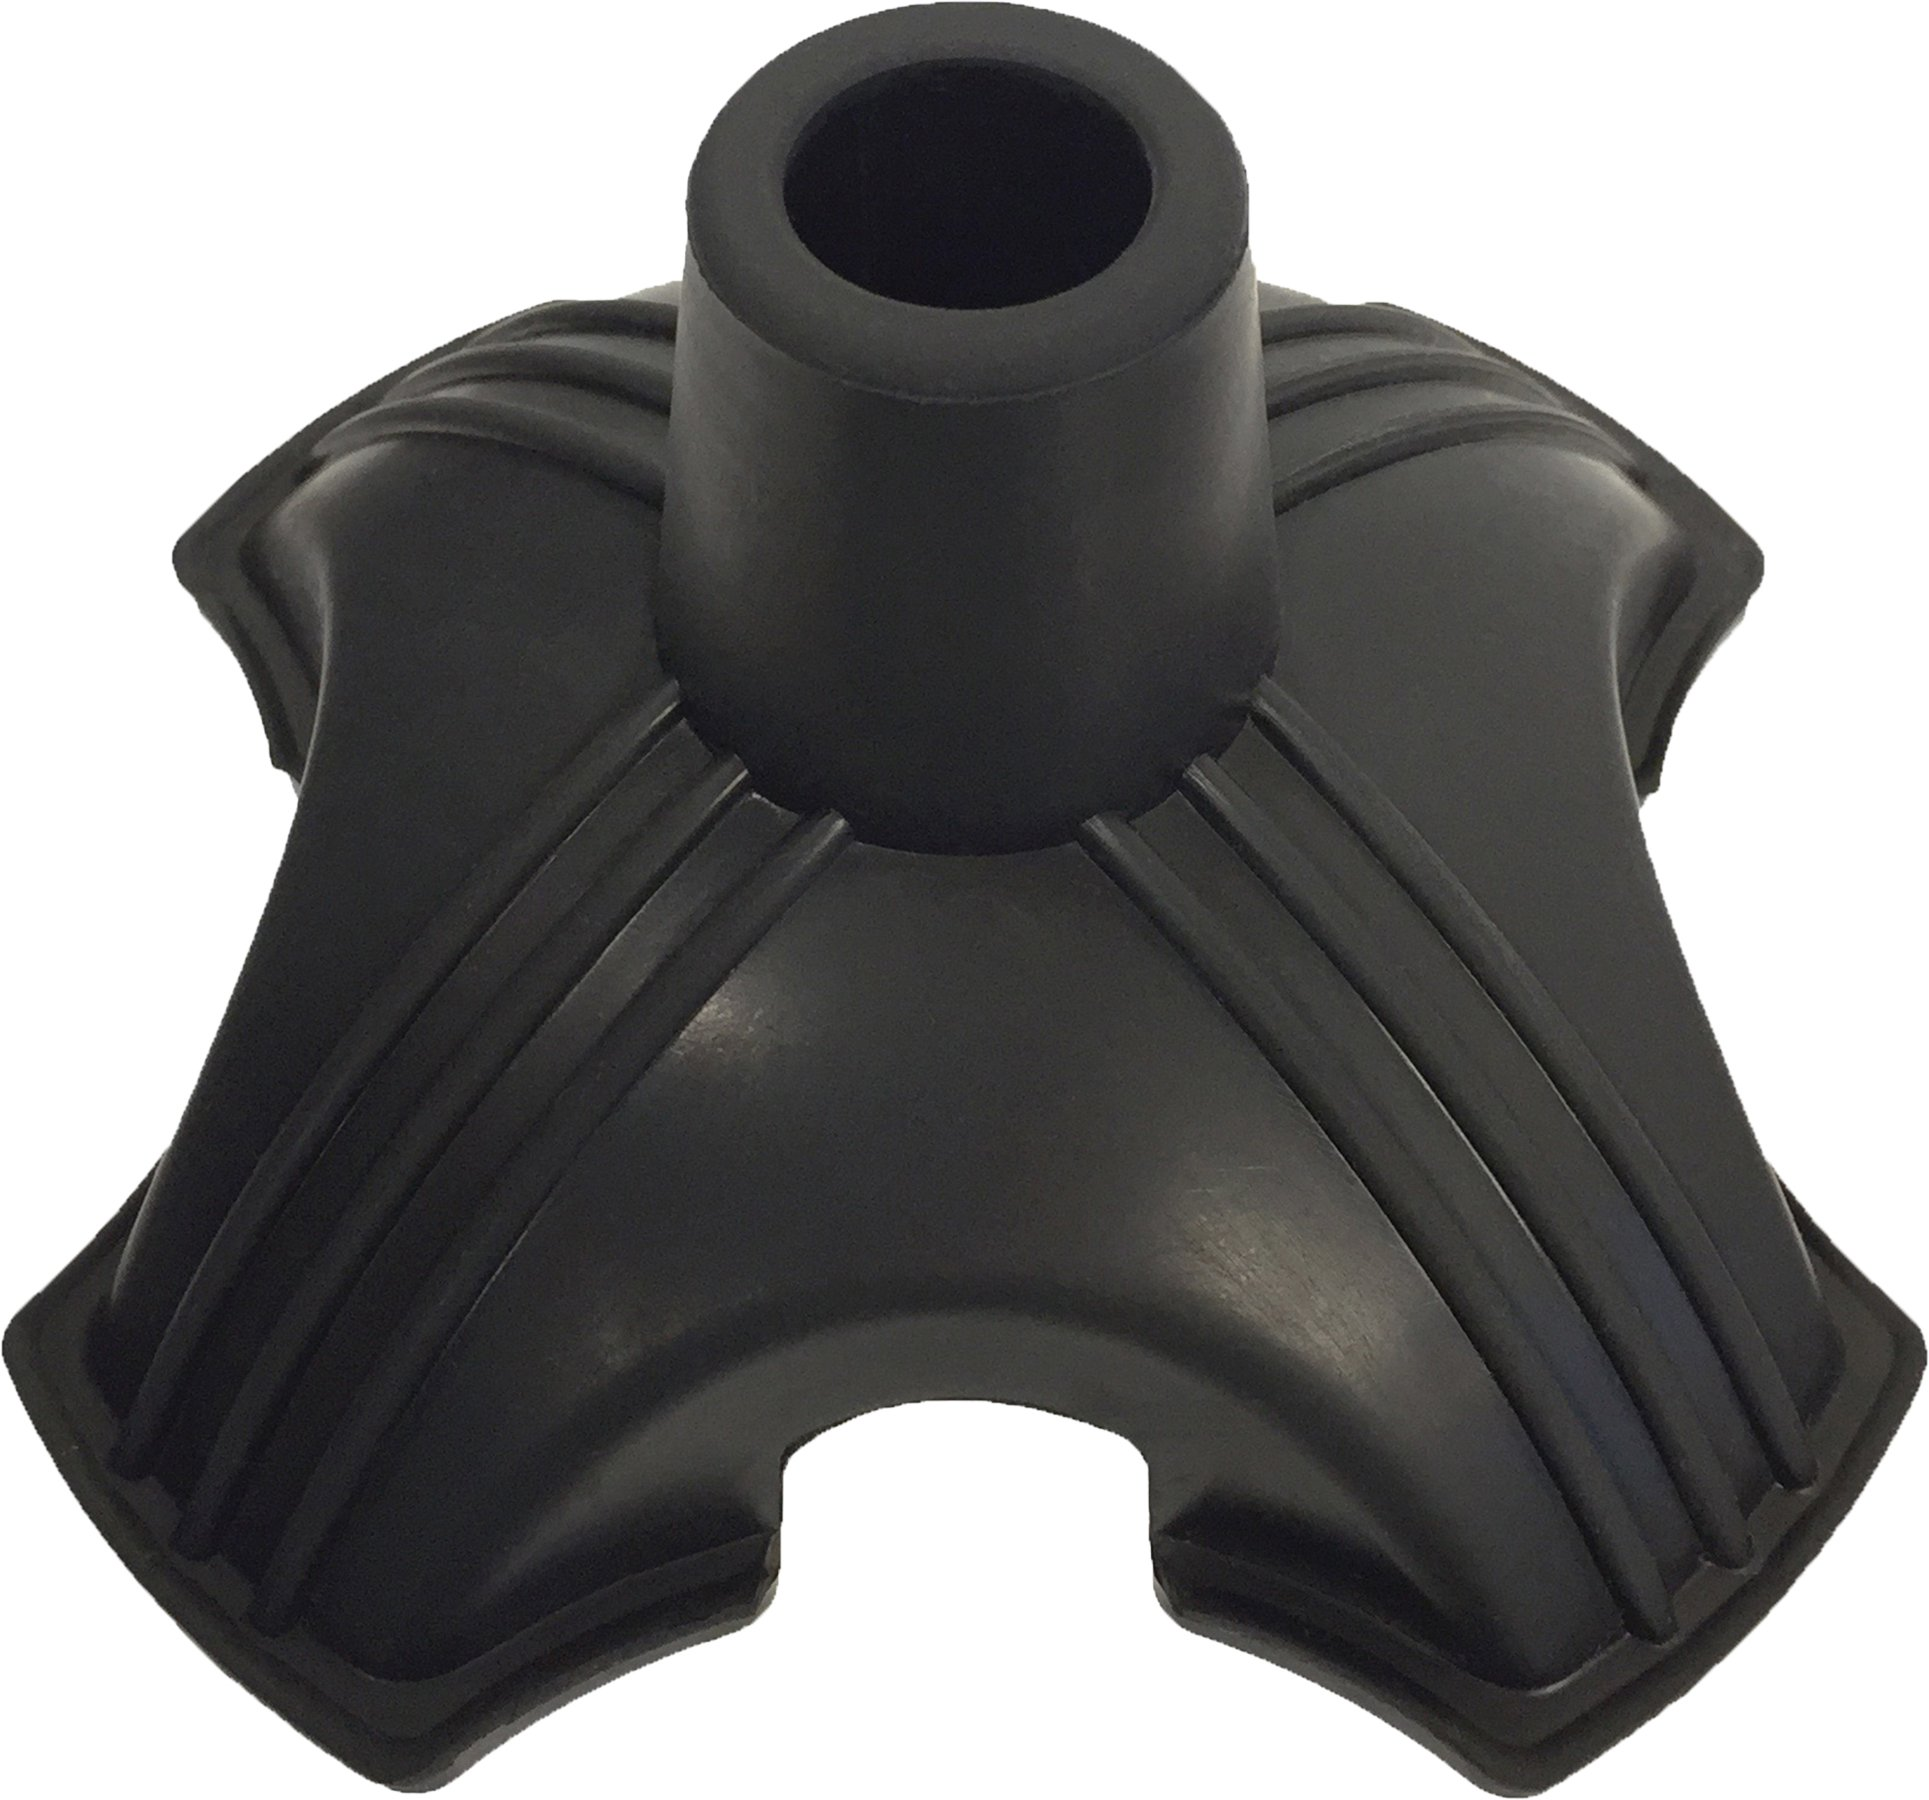 NOVA Quad Tip Cane Base by NOVA Medical Products